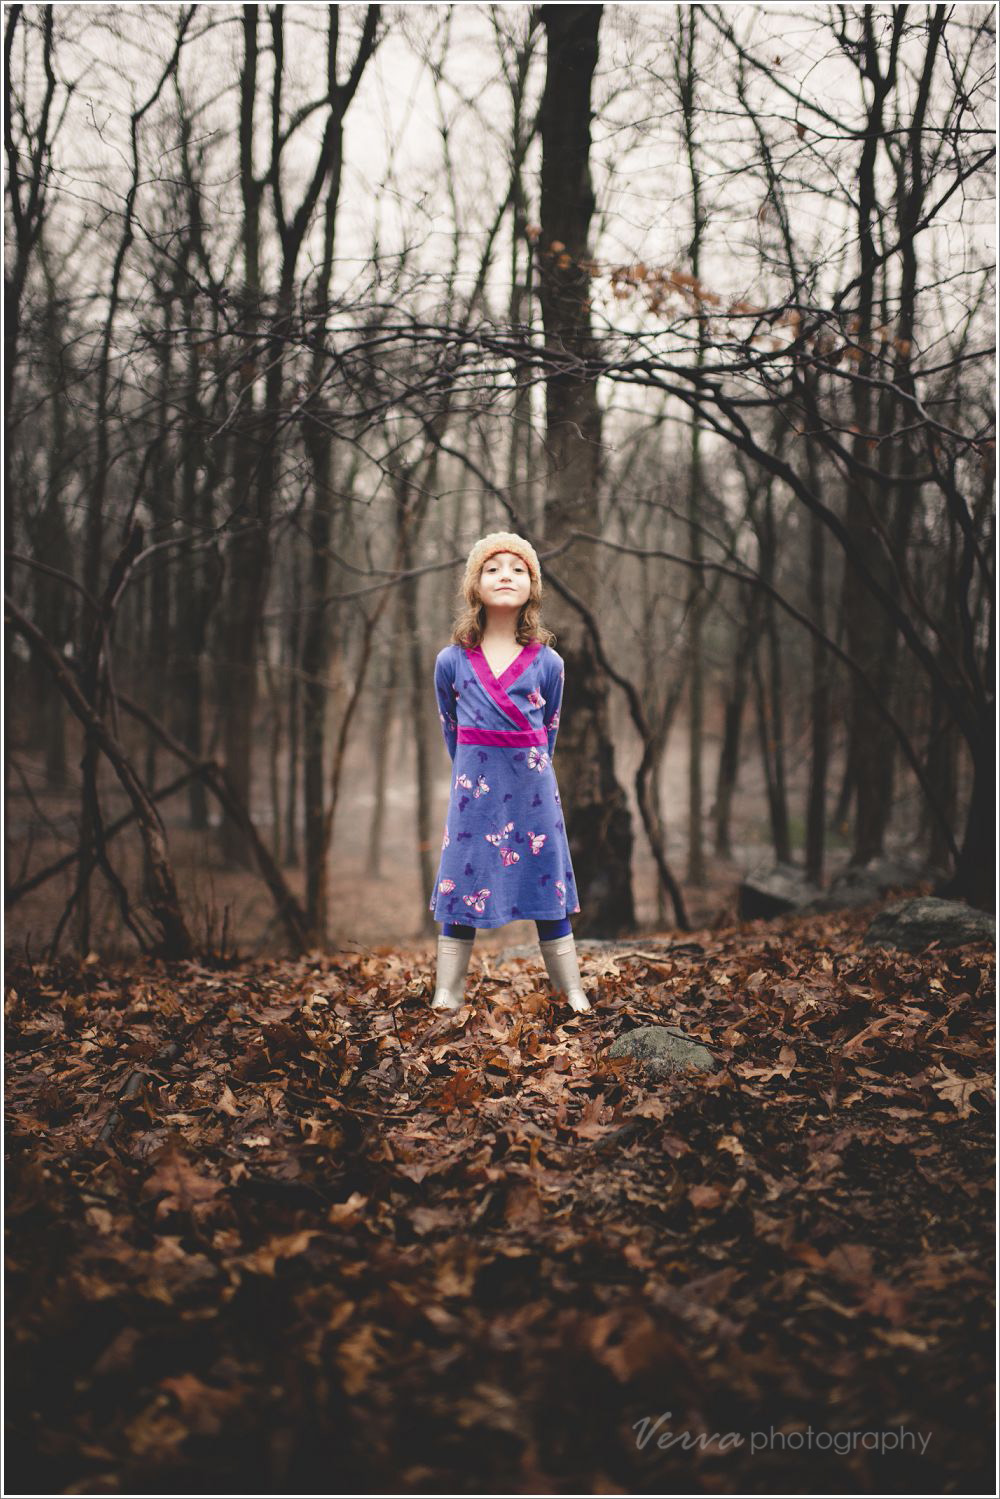 children's portraits in winter